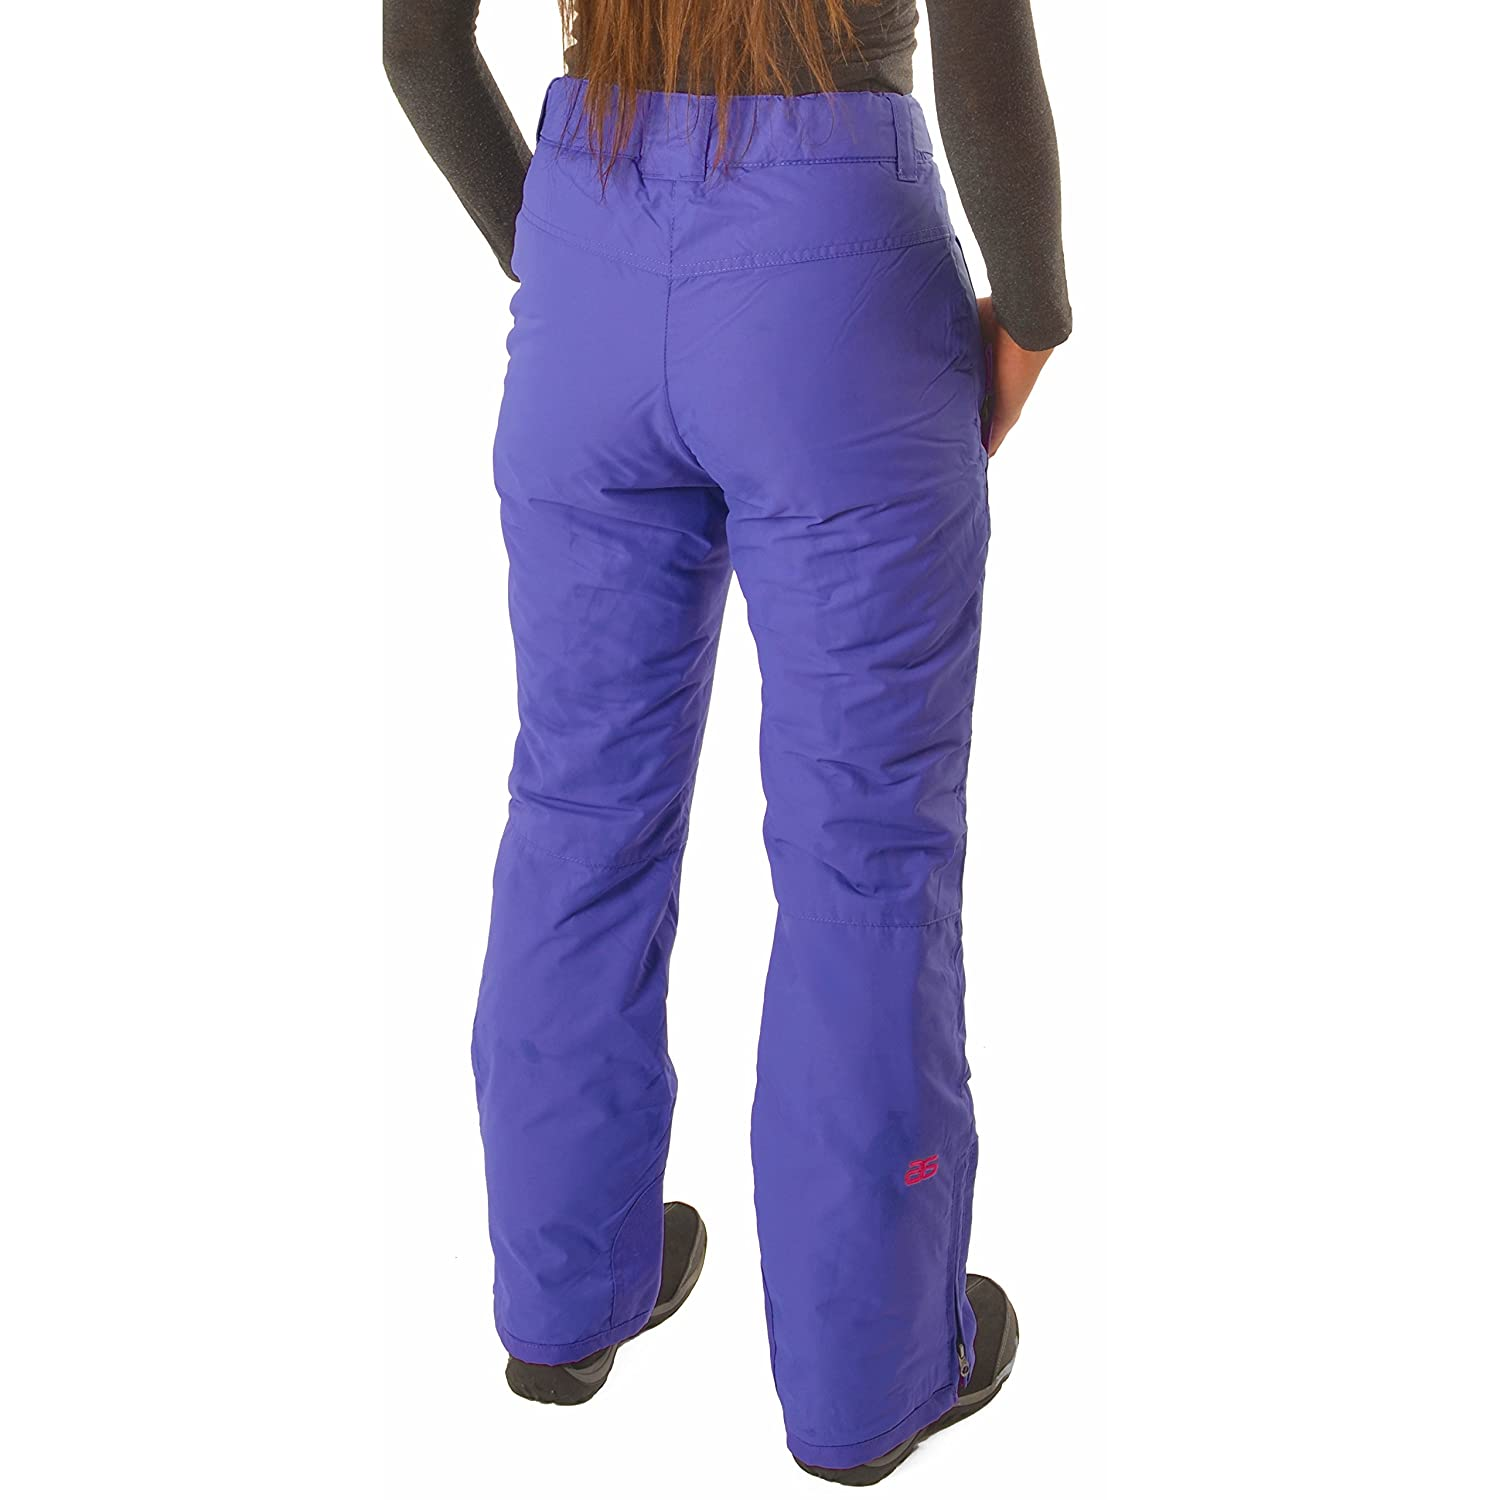 Amazon.com : SkiGear Women's 1800 Thermatech Insulated Snow Pant : Sports &  Outdoors